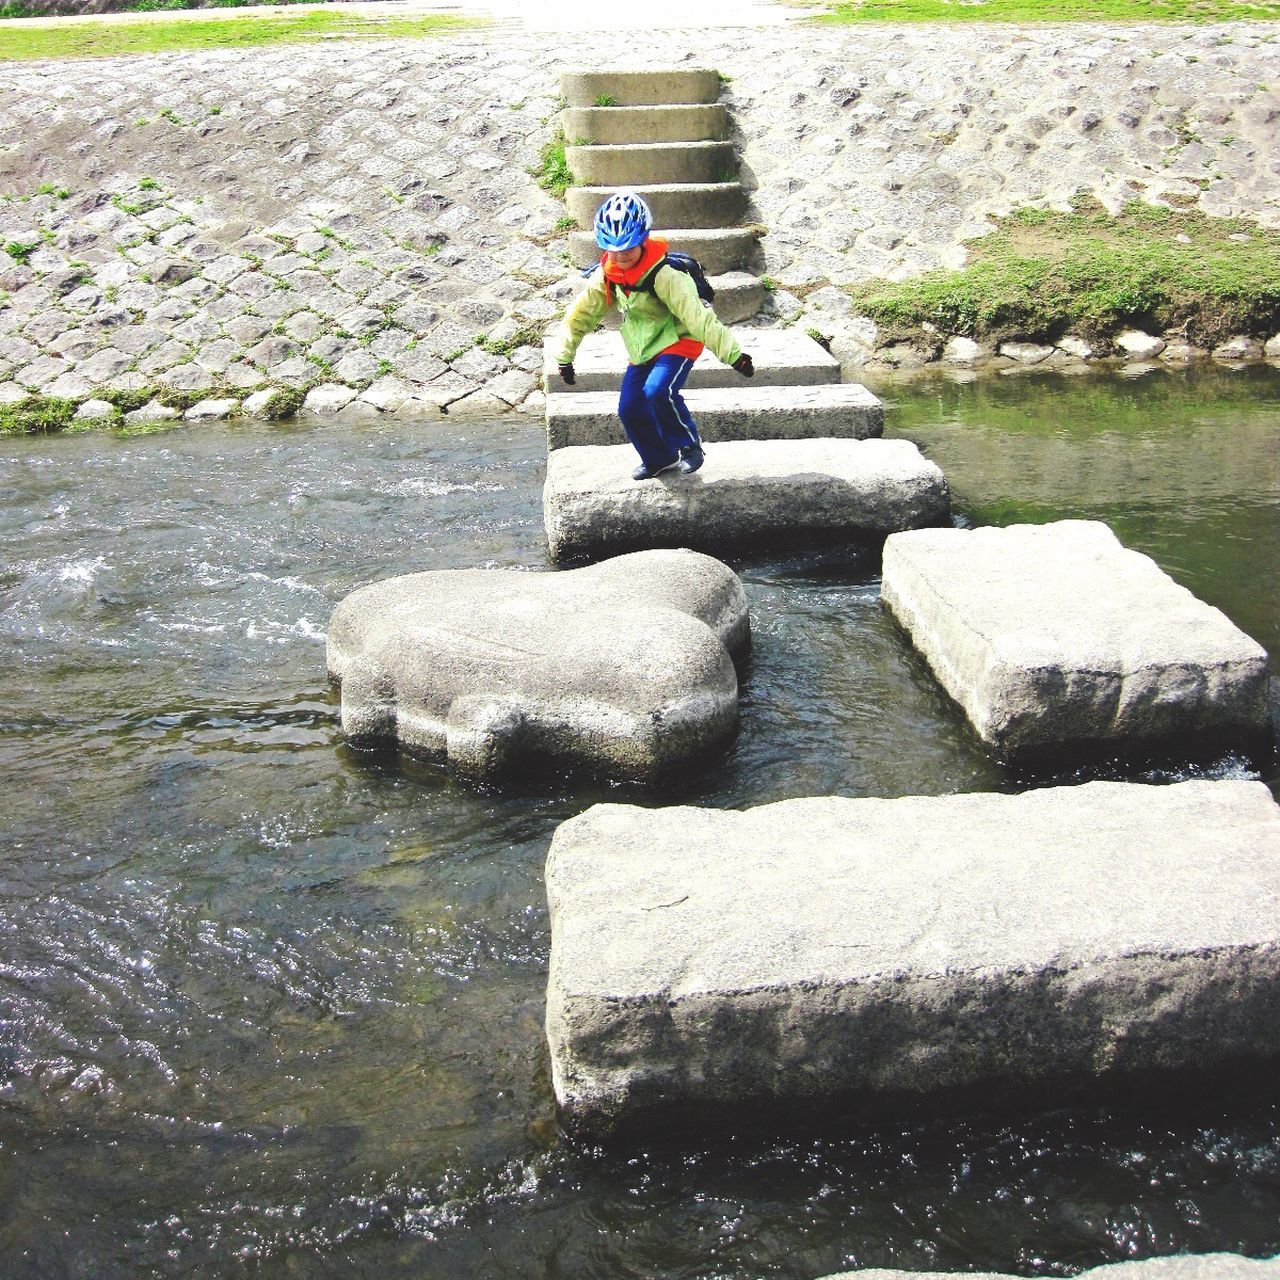 Boy Playing Over Concrete Stones Over River